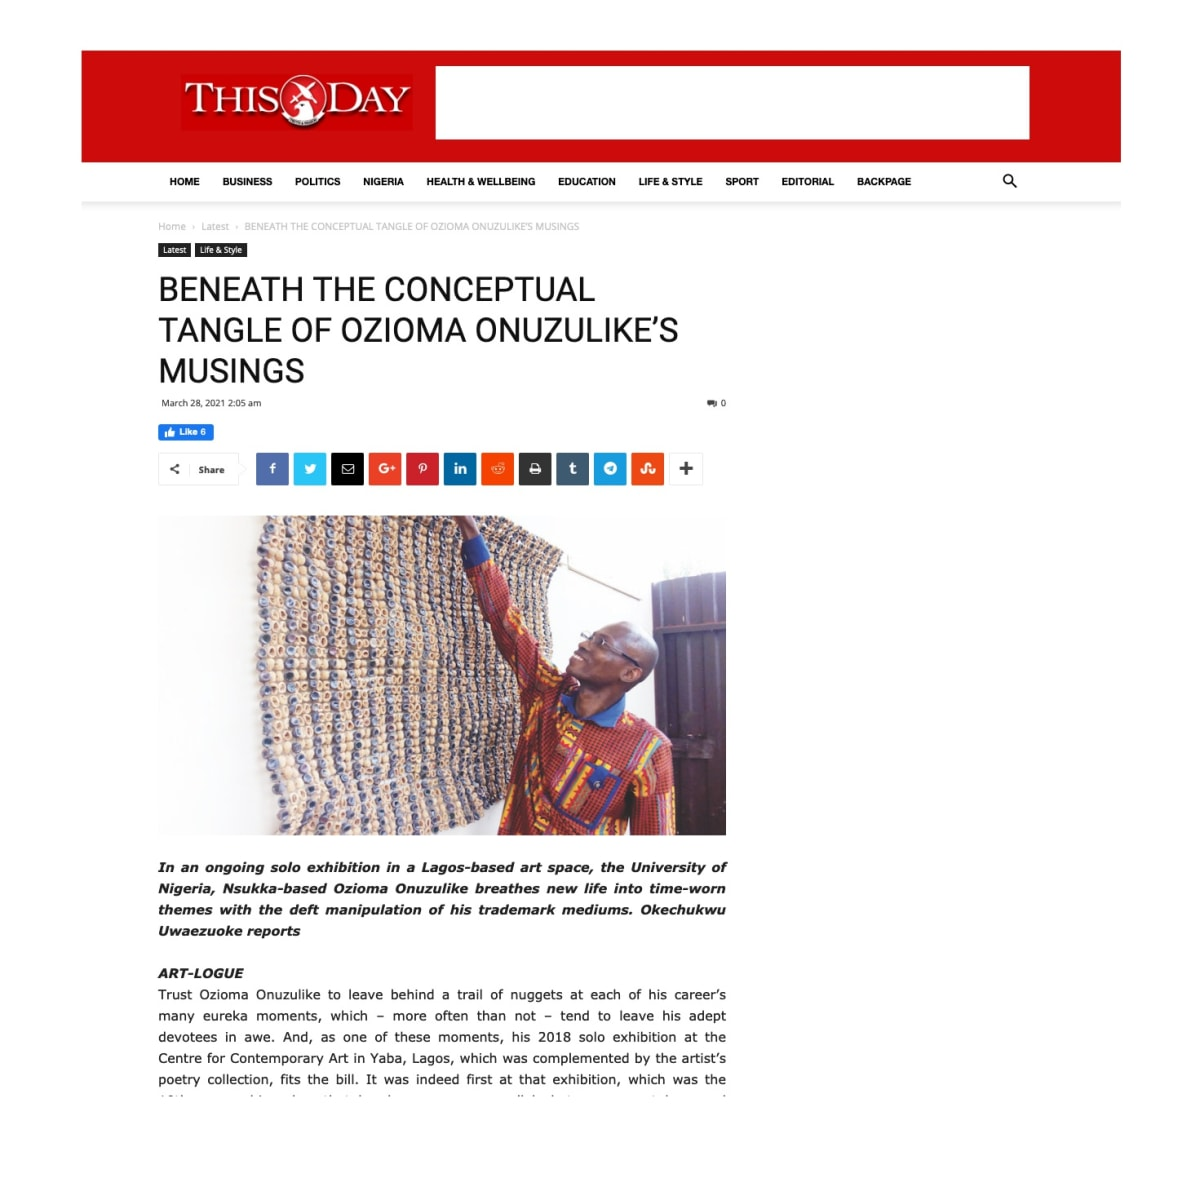 ThisDay: 'Beneath the Conceptual Tangle of Ozioma Onuzulike's Musings'